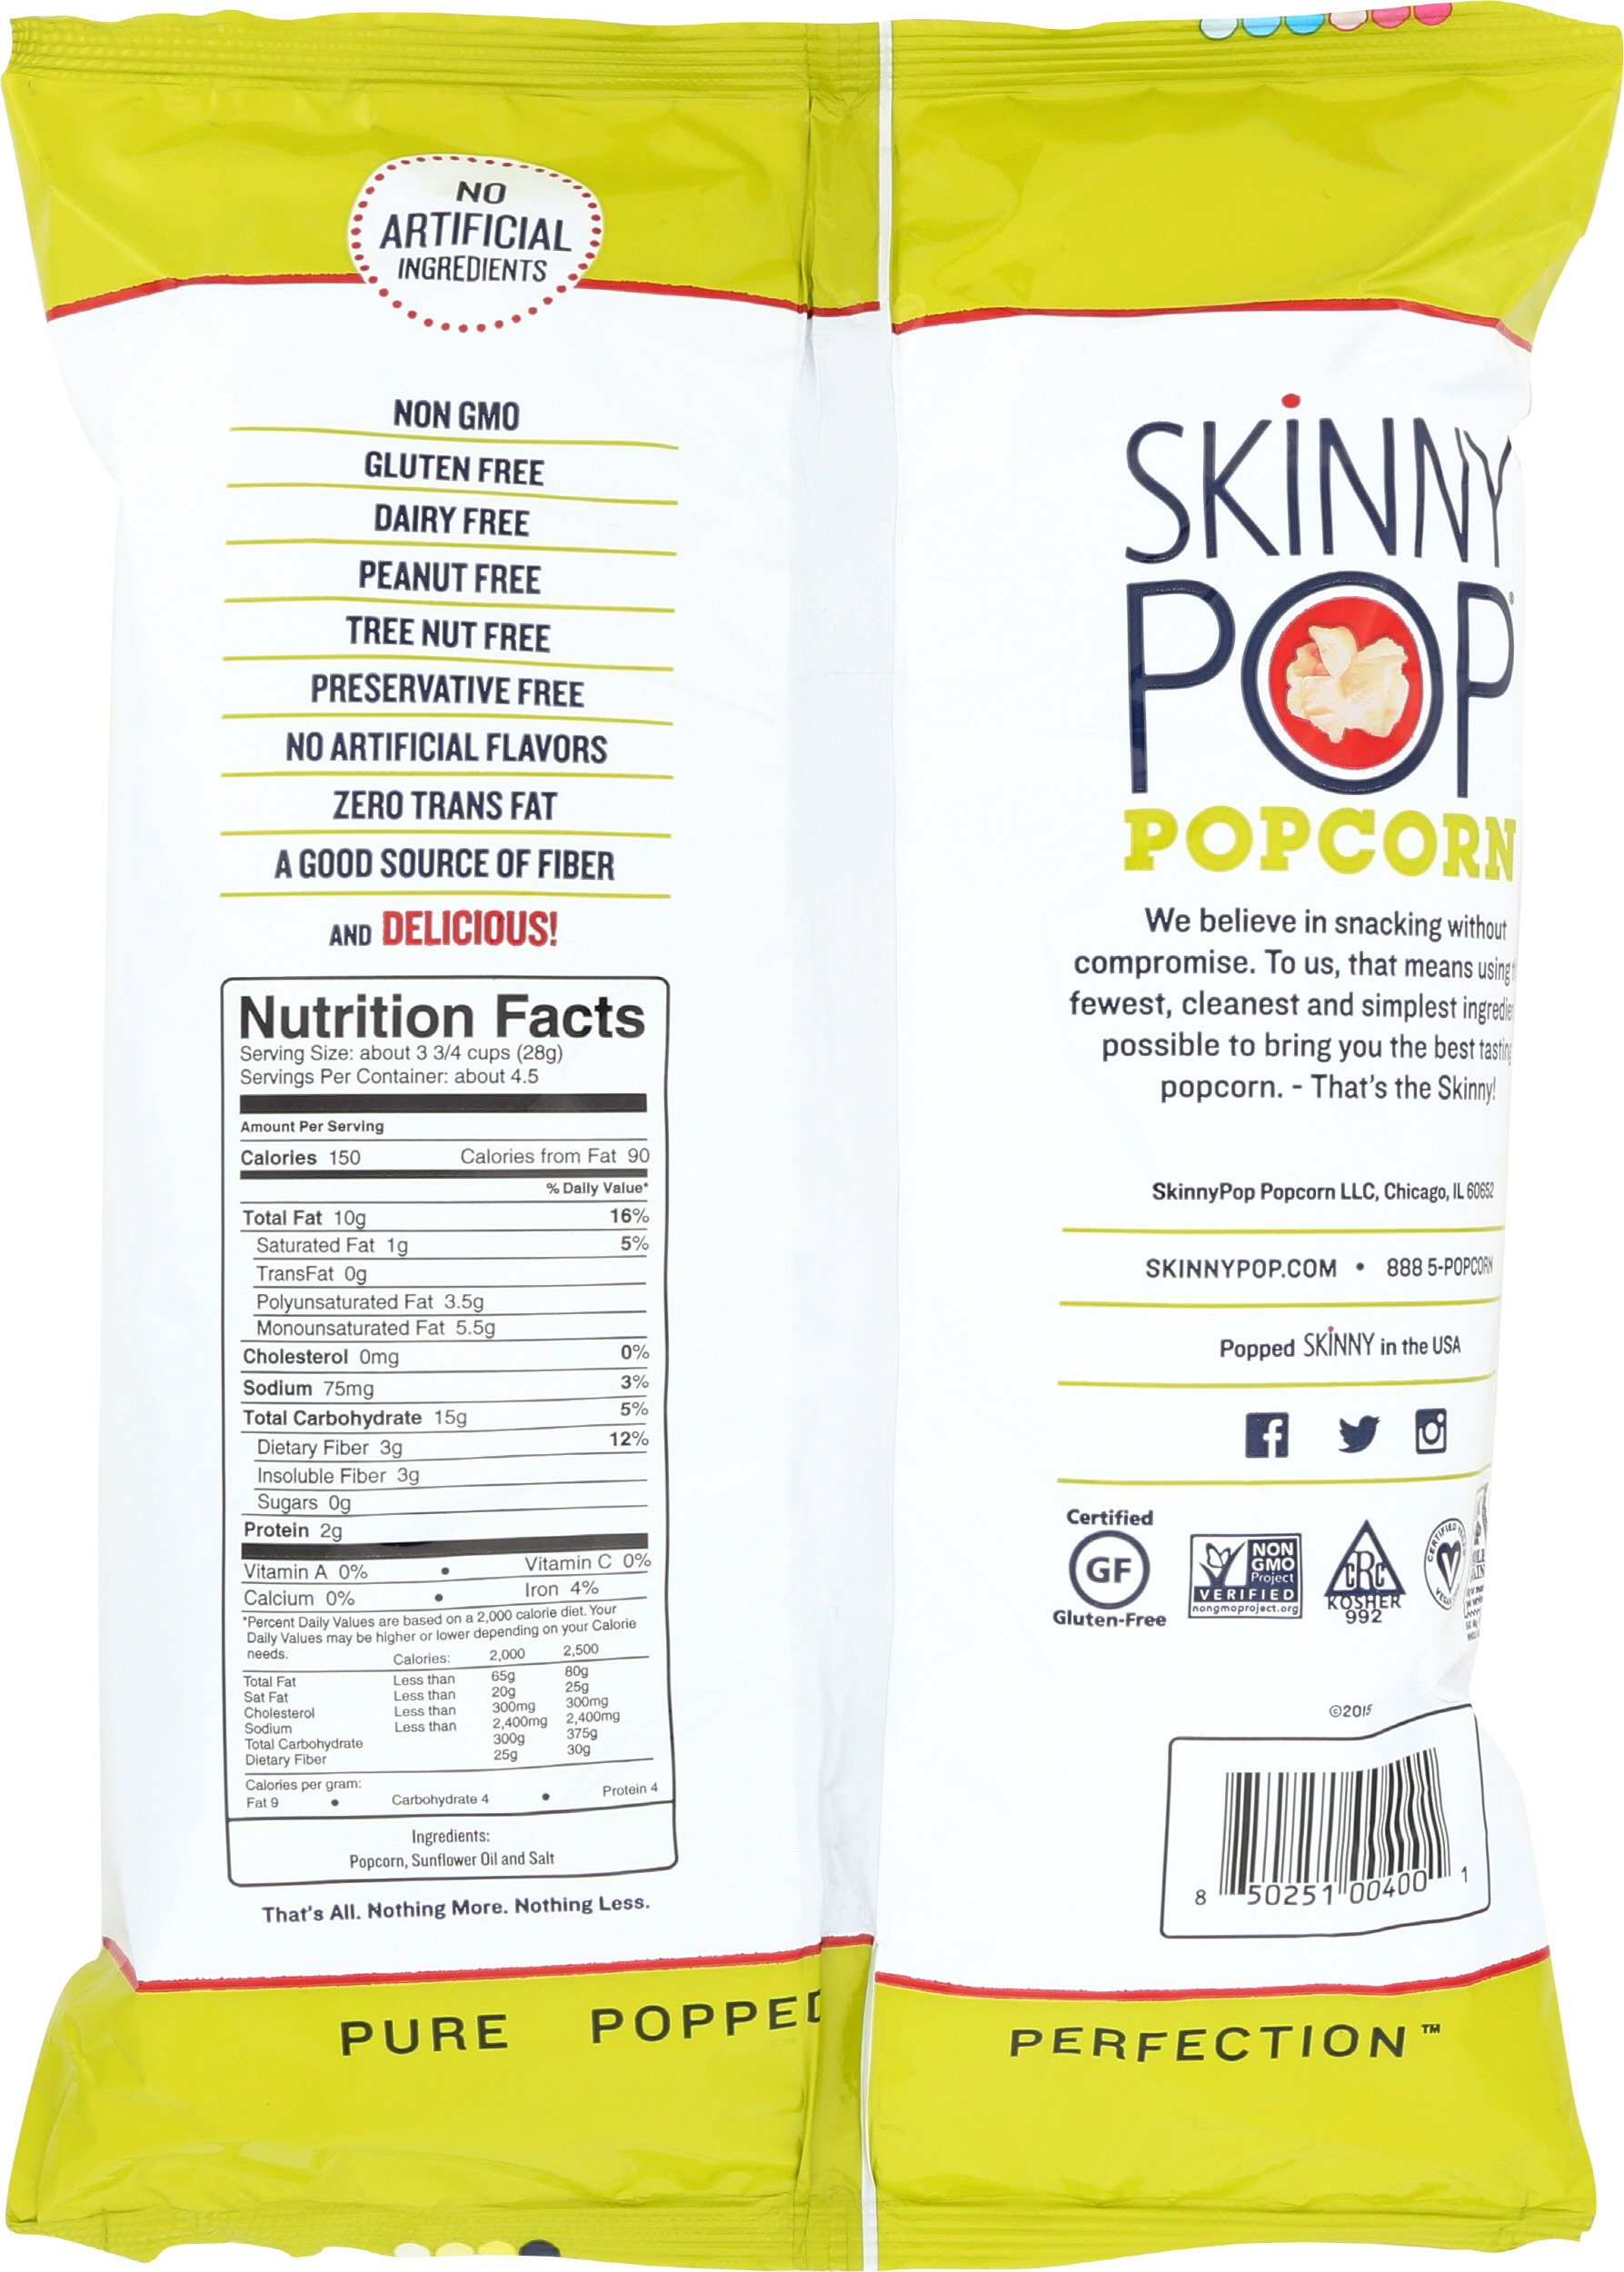 SKINNYPOP Original Popped Popcorn, Individual Bags, Gluten Free Popcorn, Non-GMO, No Artificial Ingredients, A Delicious Source of Fiber, 4.4 Ounce (Pack of 12) by SkinnyPop (Image #2)